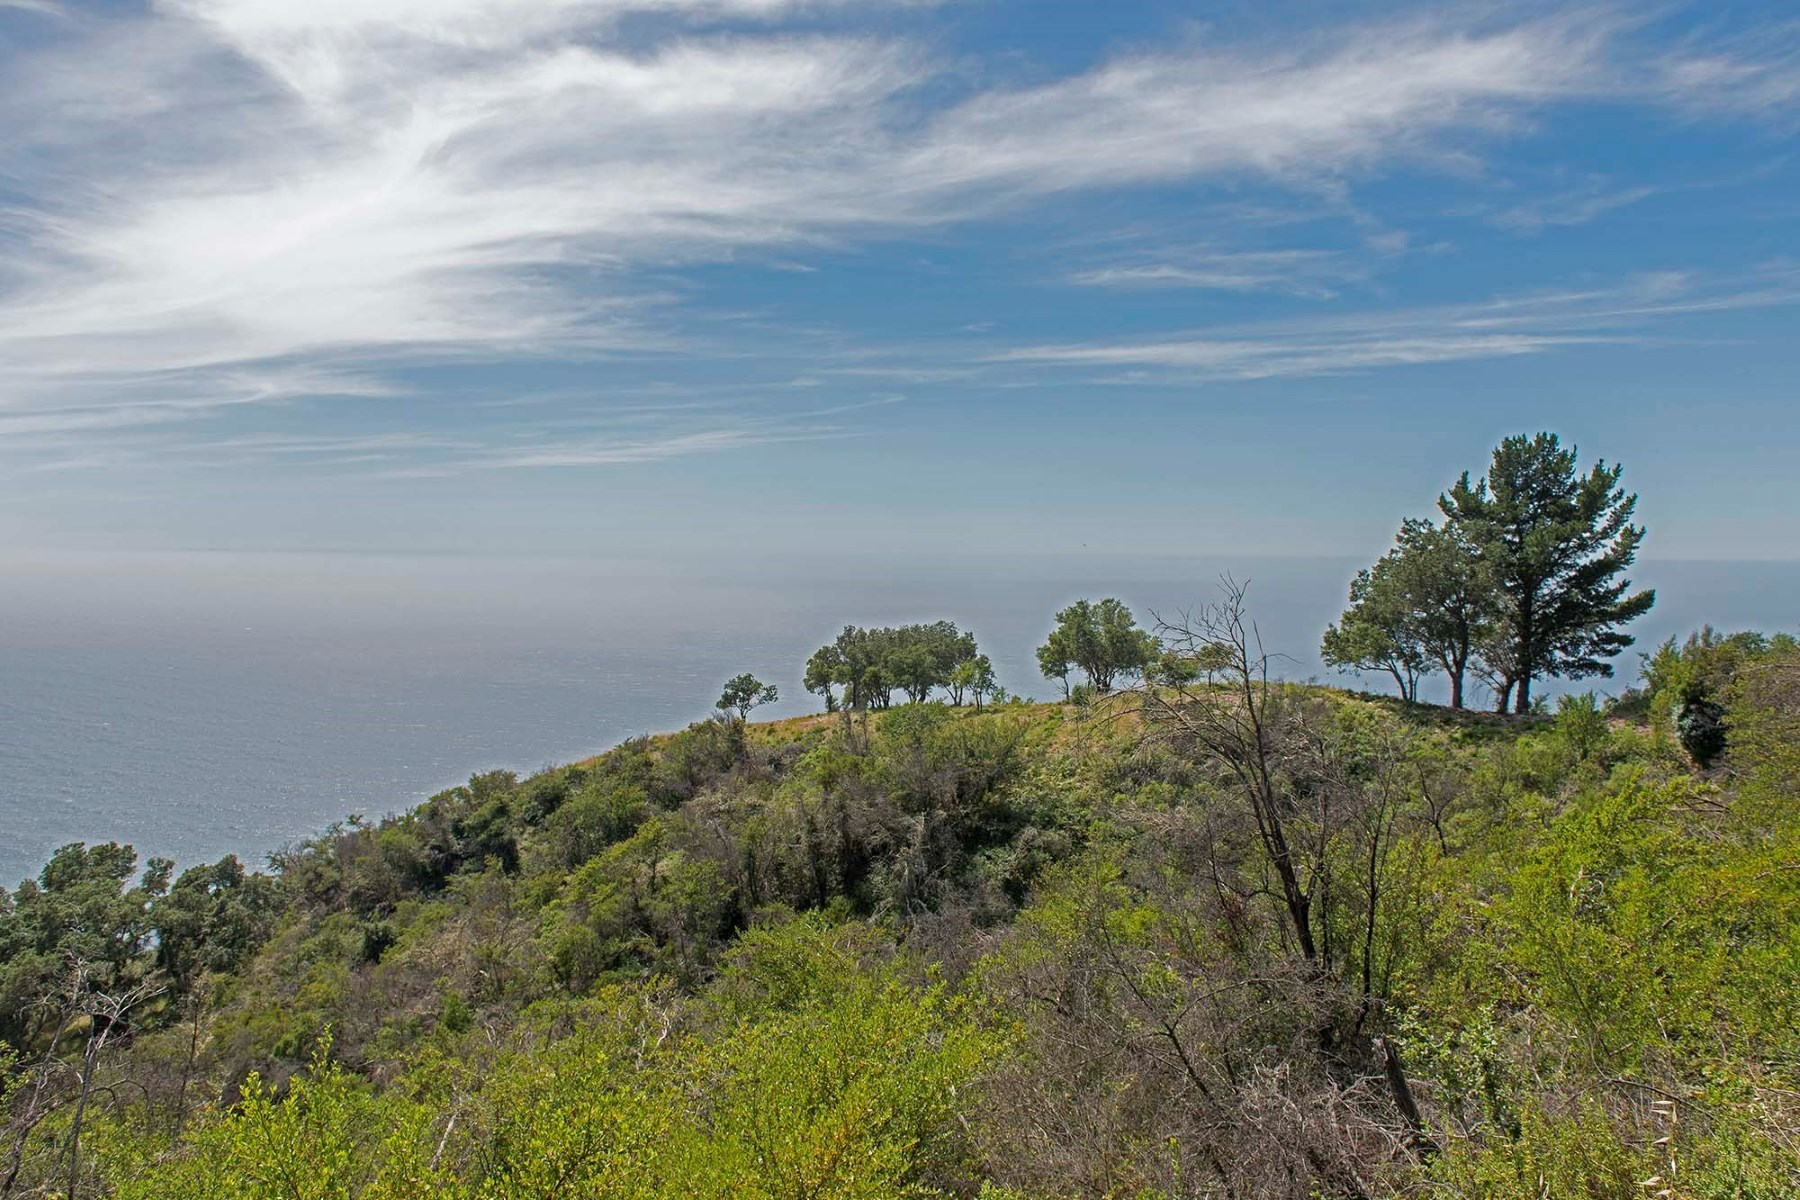 Terrain pour l Vente à Panoramic Ocean and Mountain Views Highway 1 At Santa Lucia Ranch Big Sur, Californie, 93920 États-Unis